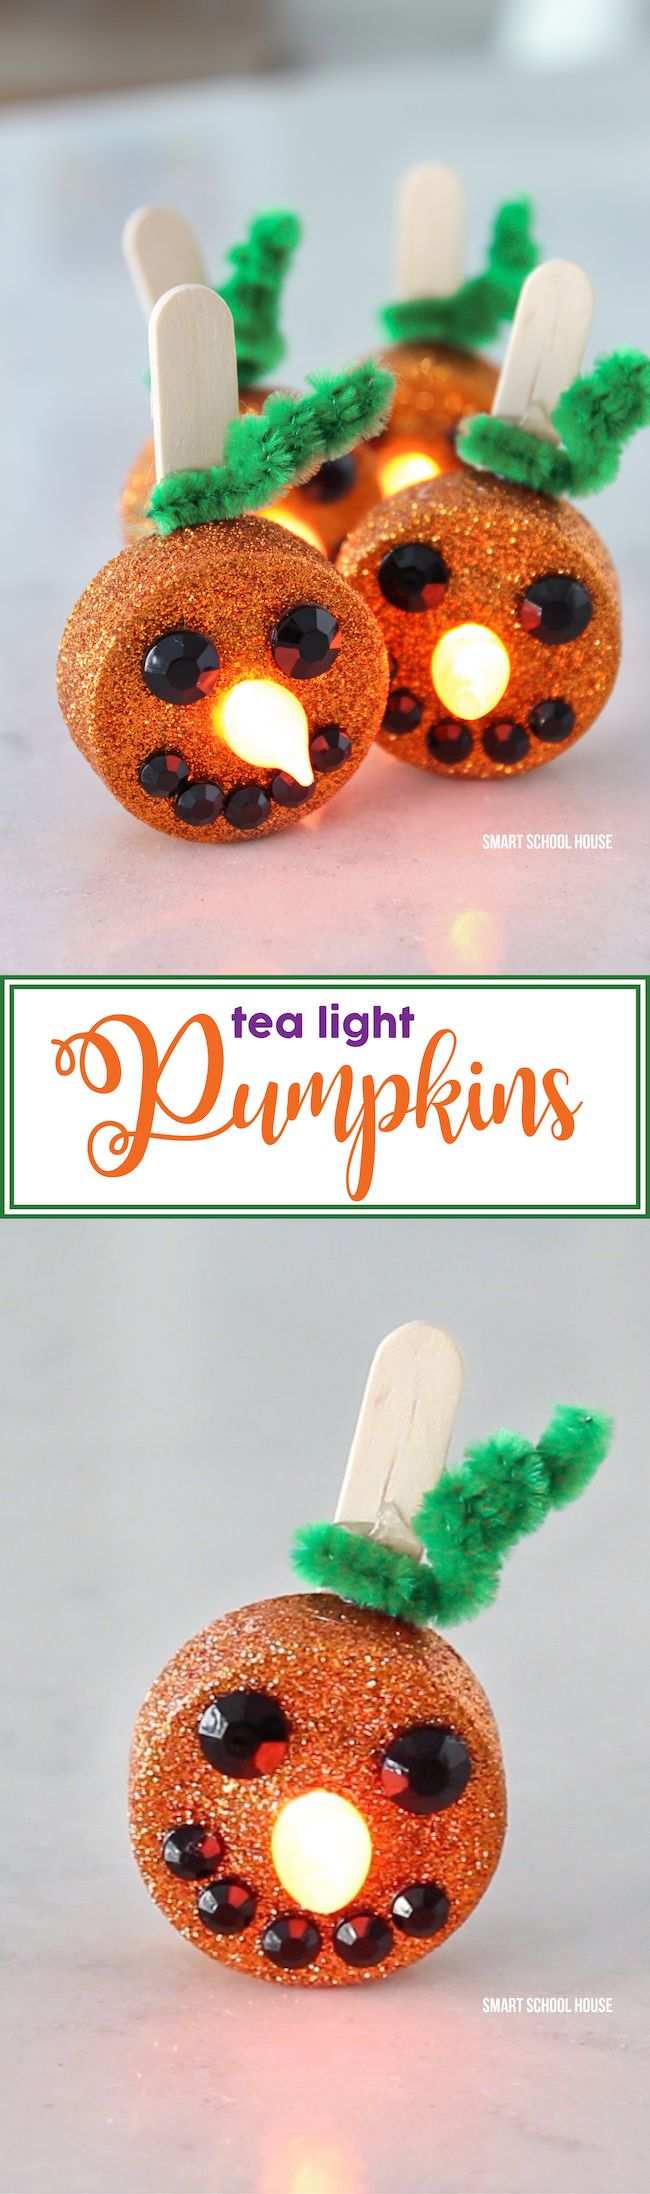 Tea Light Pumpkins - little orange flameless tea lights that stand up and smile! Turn on the candle and the flame becomes the glowing pumpkin nose. They are ADORABLE and so easy to make!